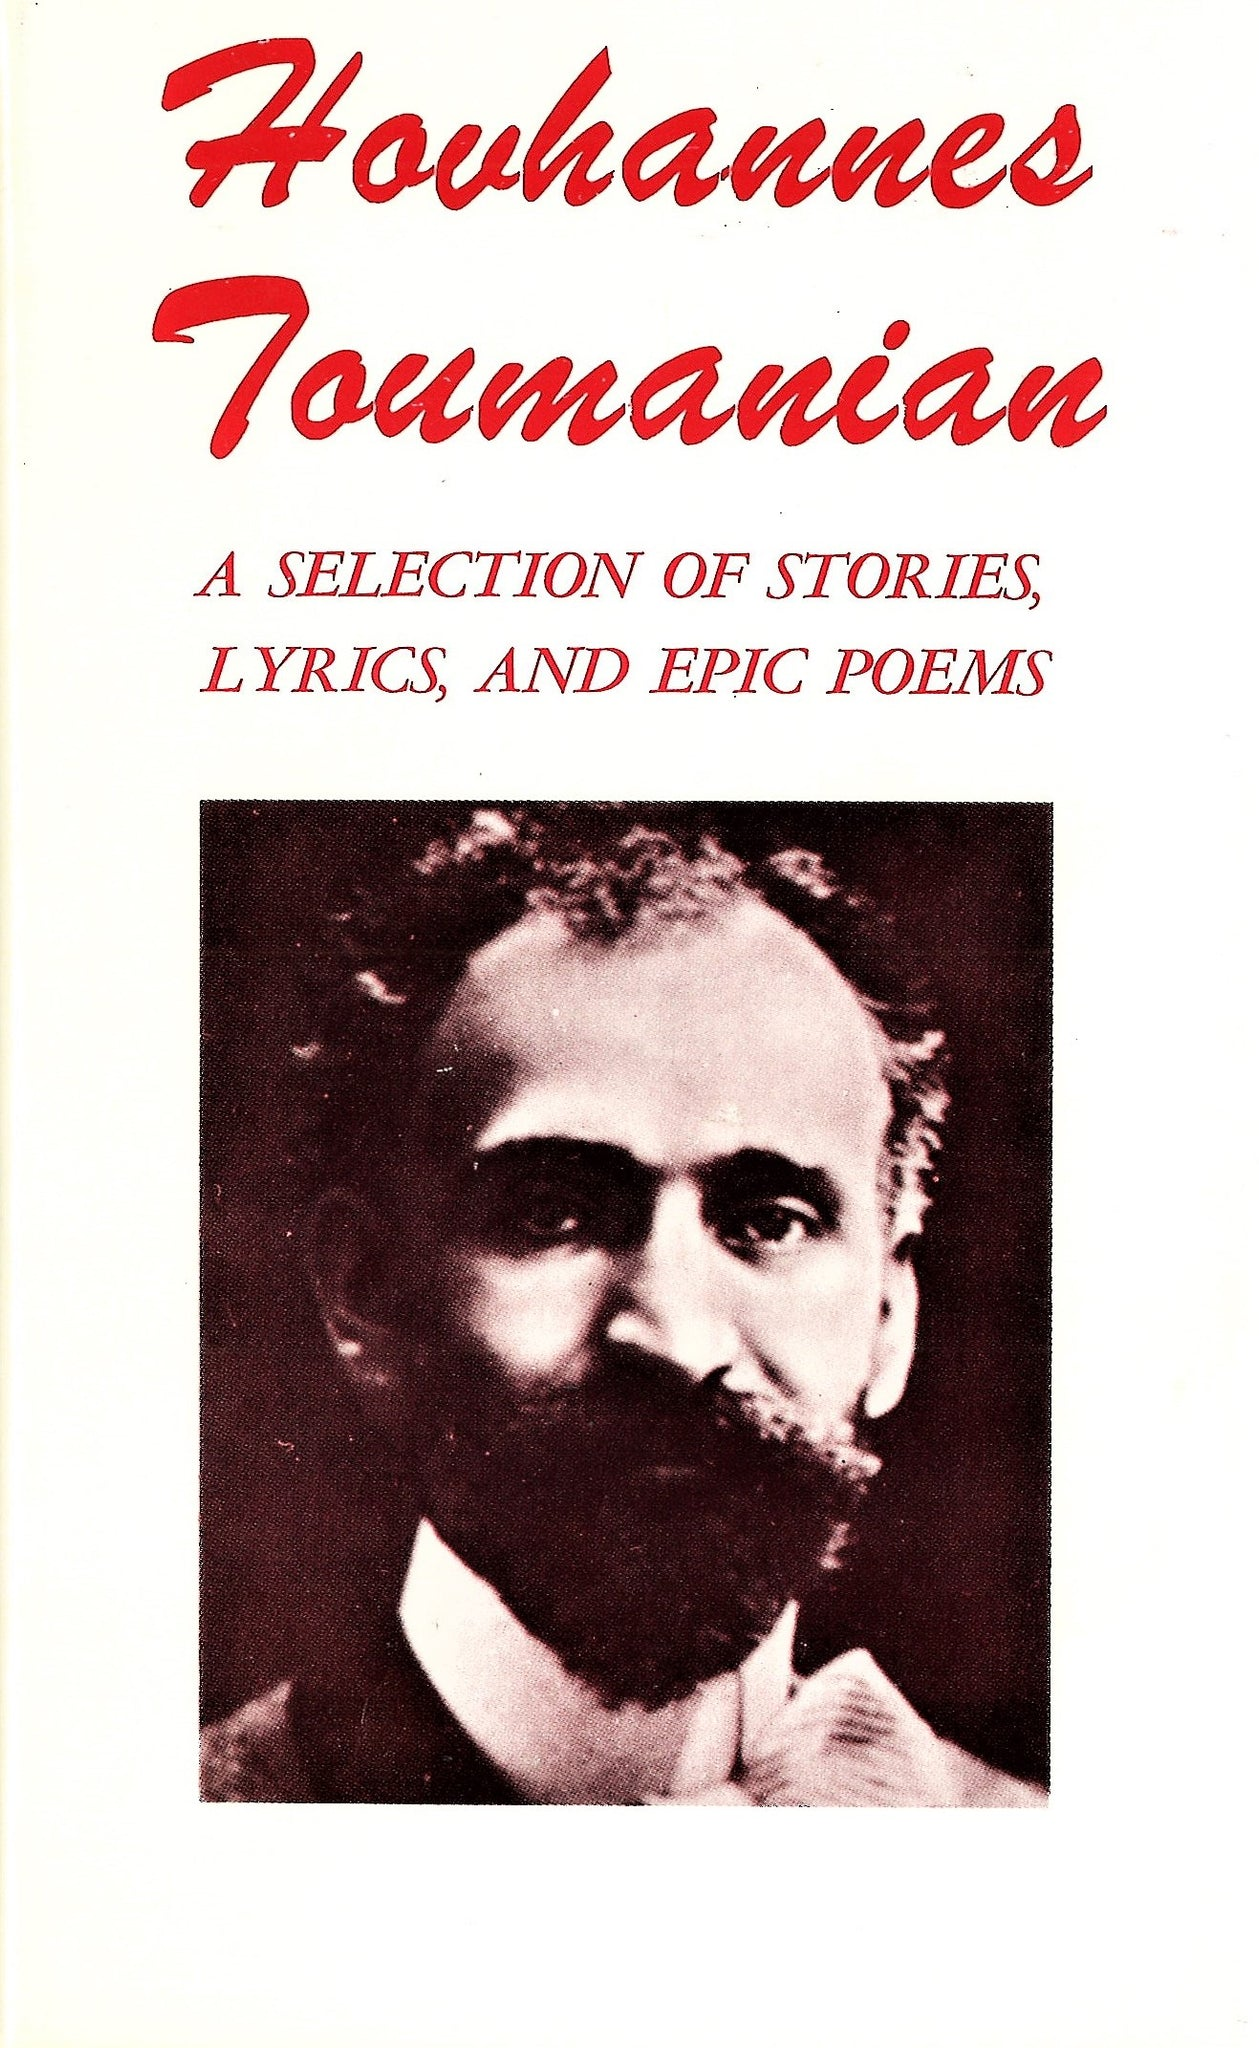 HOVHANNES TOUMANIAN: A Selection of Stories, Lyrics, and Epic Poems